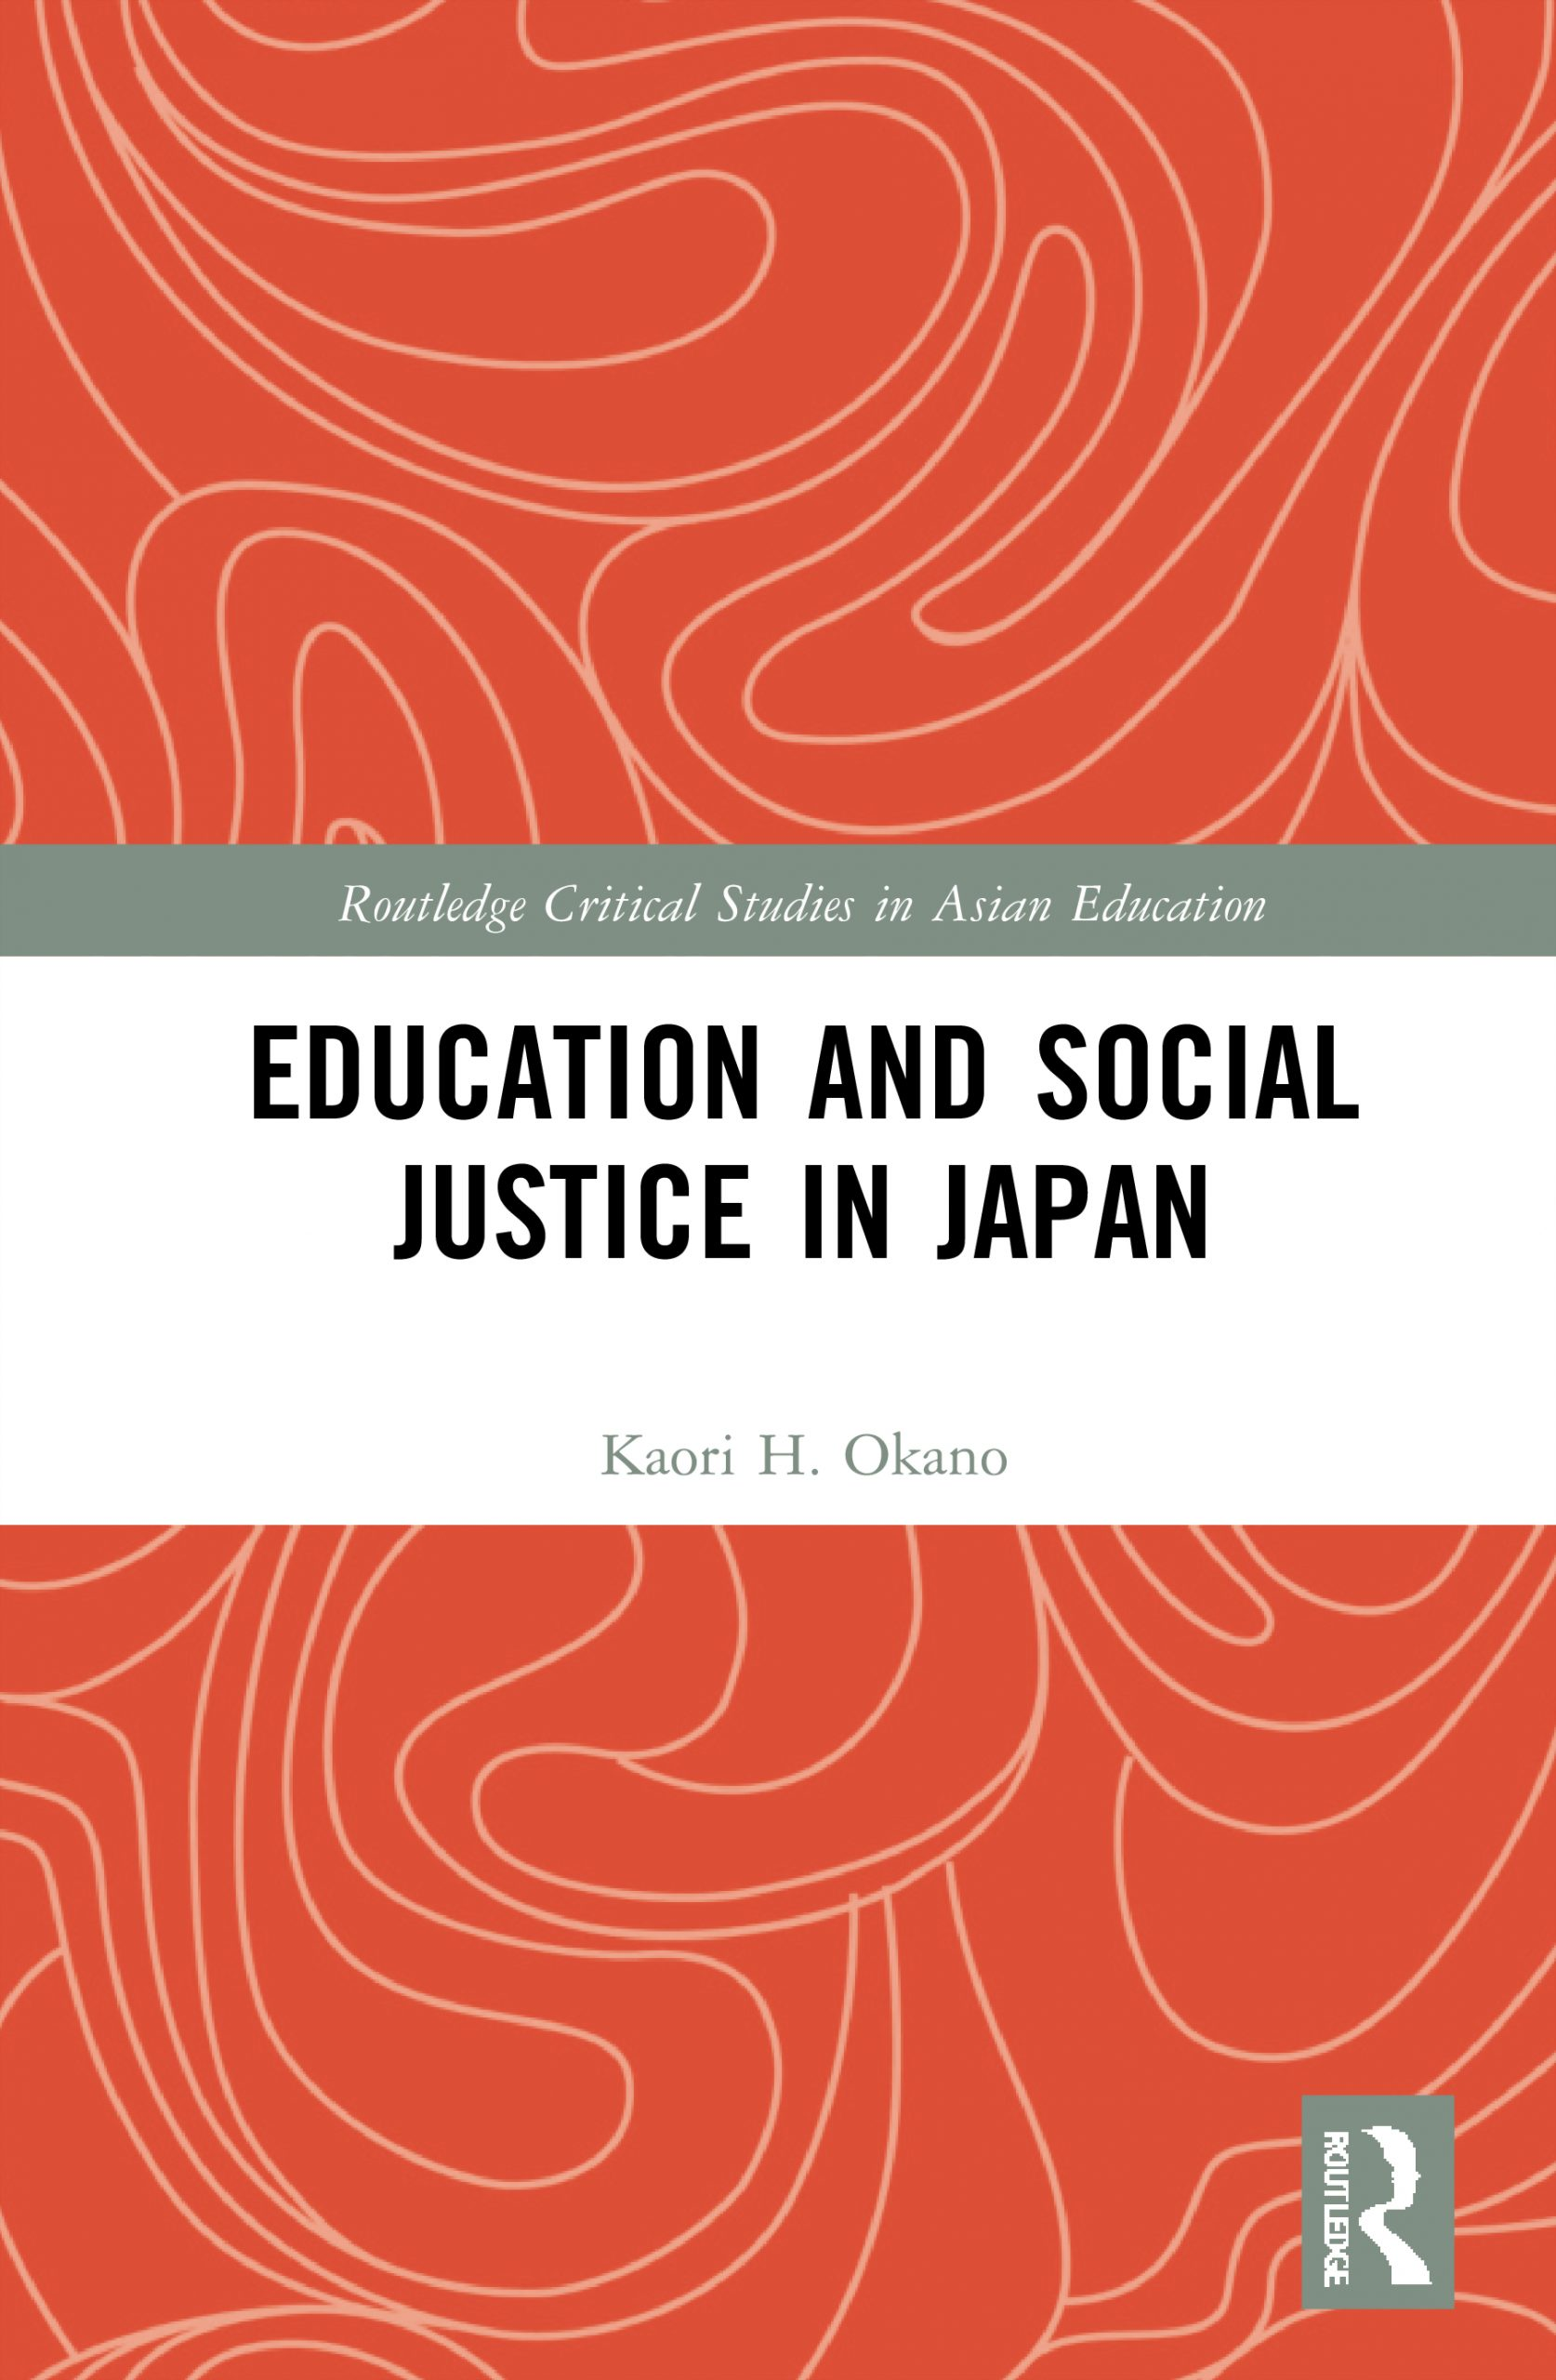 Routledge_Education and Social Justice in Japan